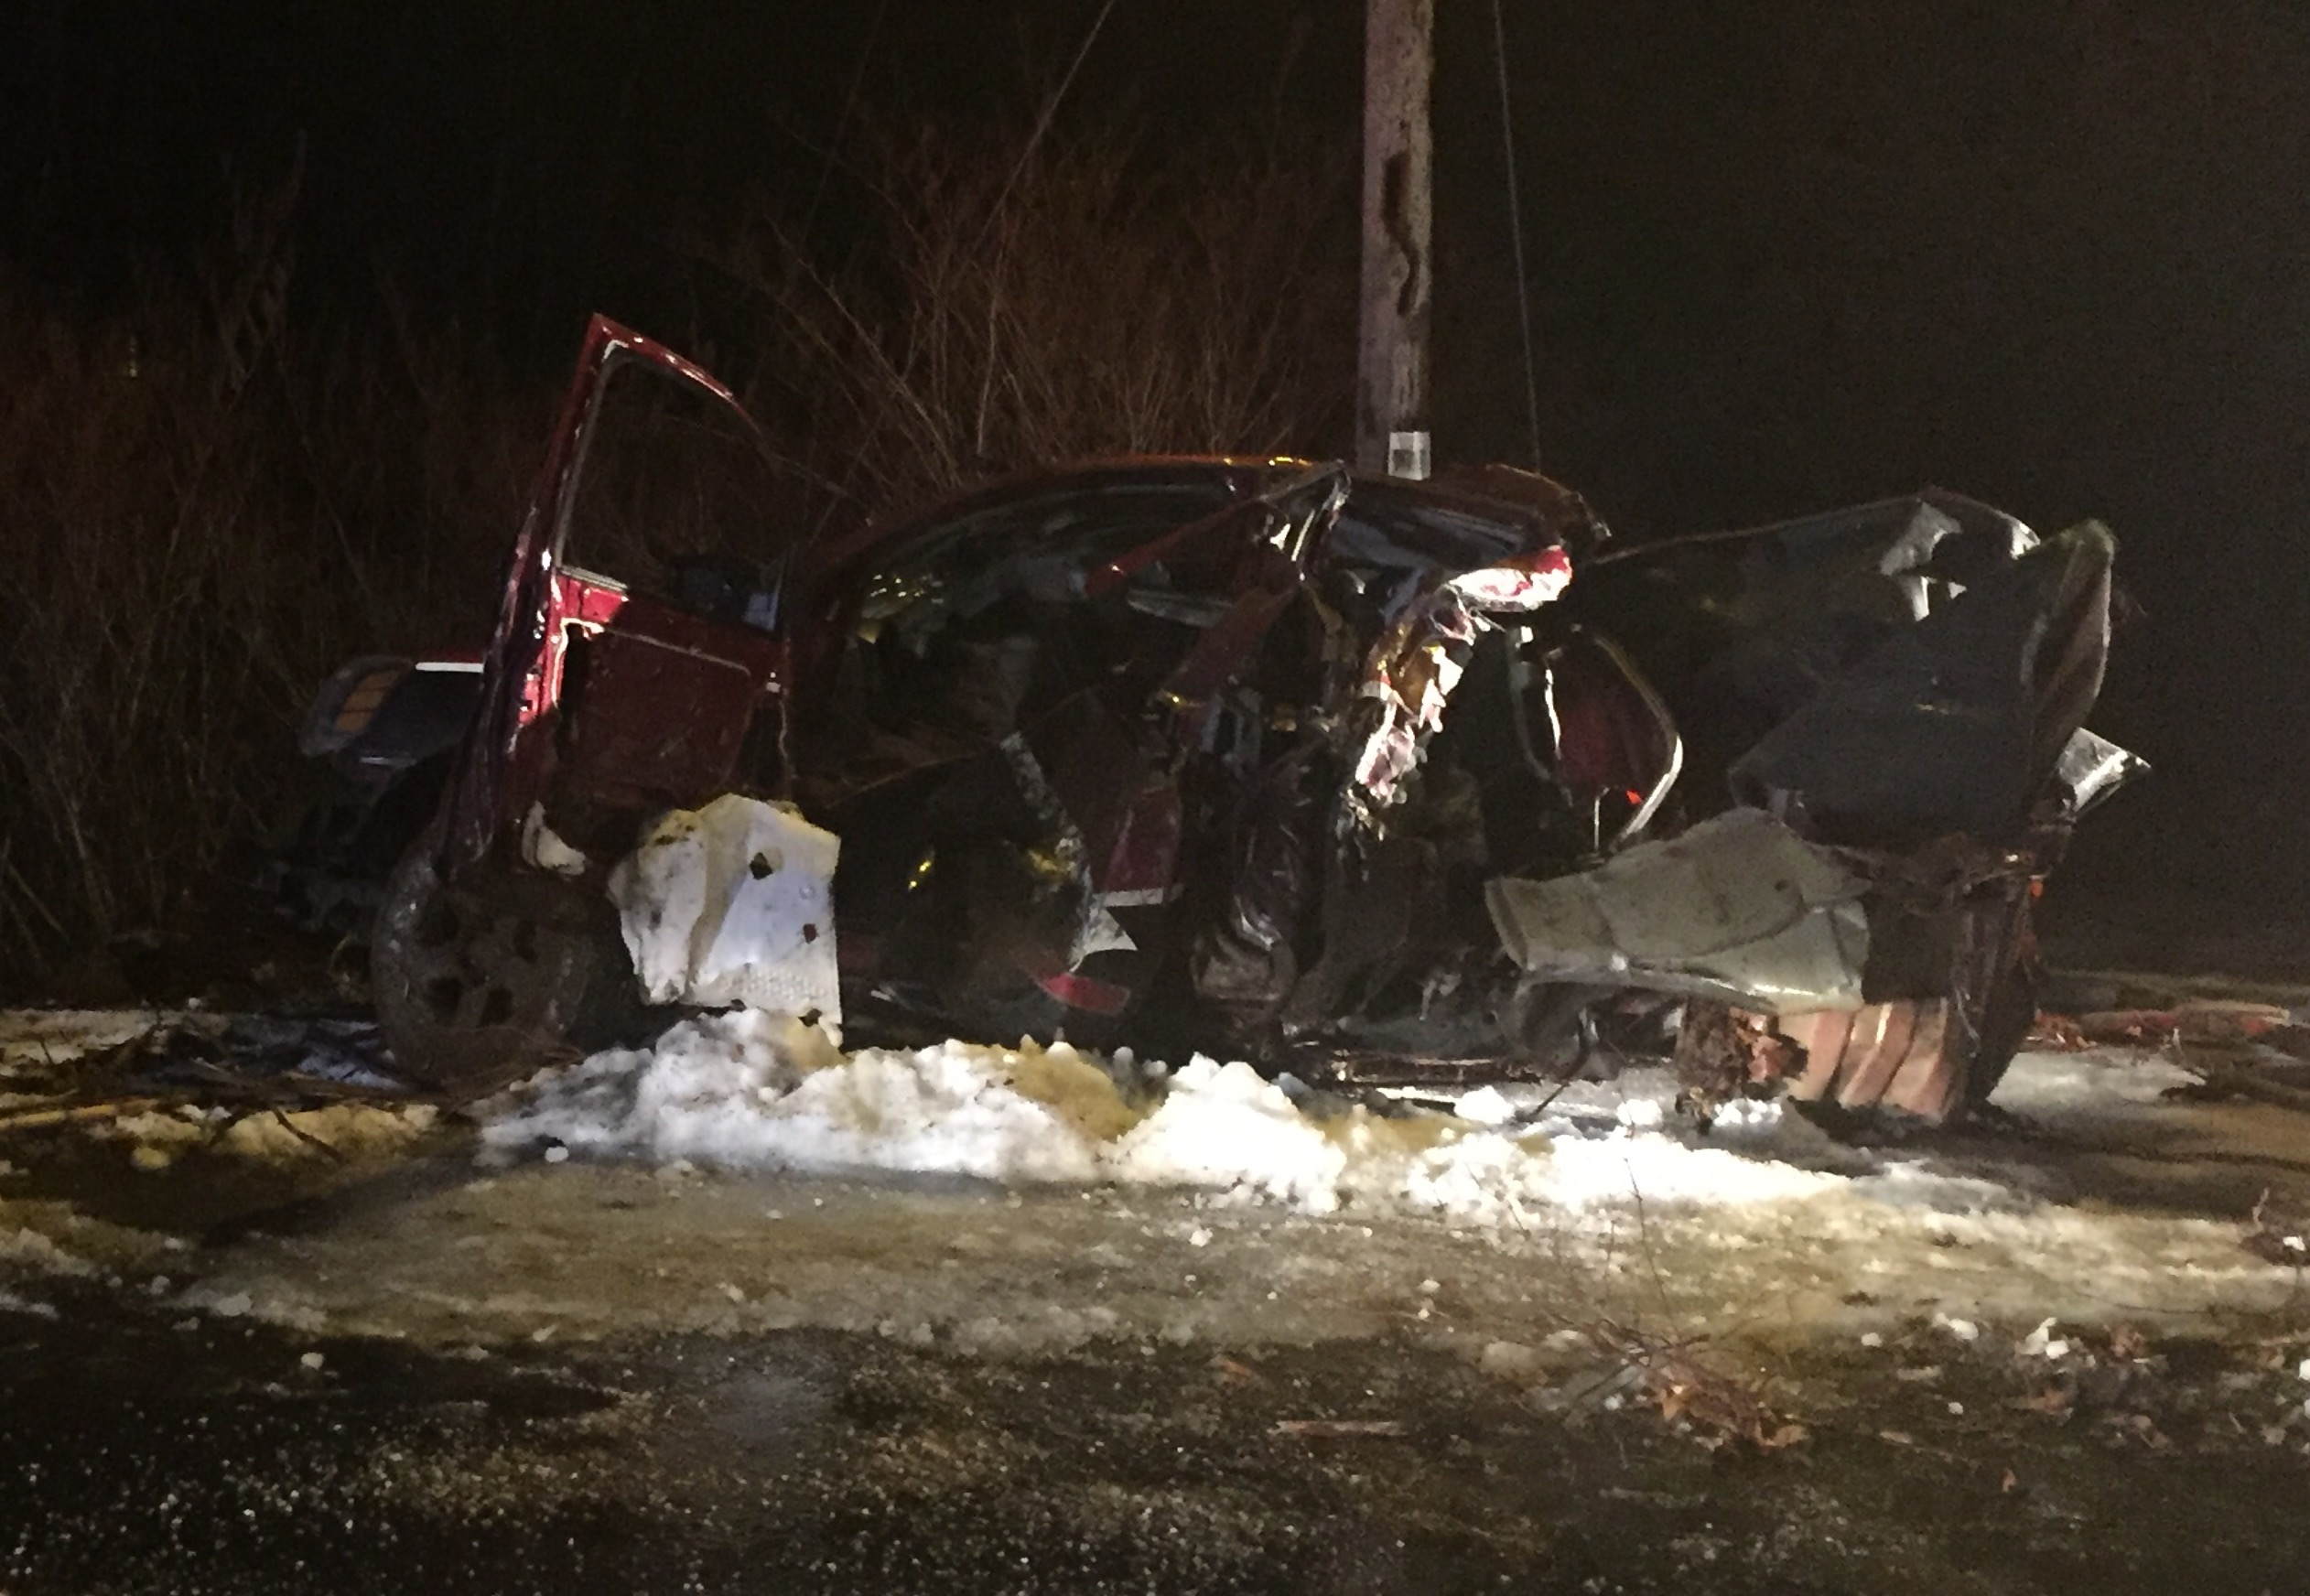 A train struck a vehicle on the tracks just south of Union Avenue in Old Orchard Beach on Tuesday night. LIZ GOTTHELF/Journal Tribune